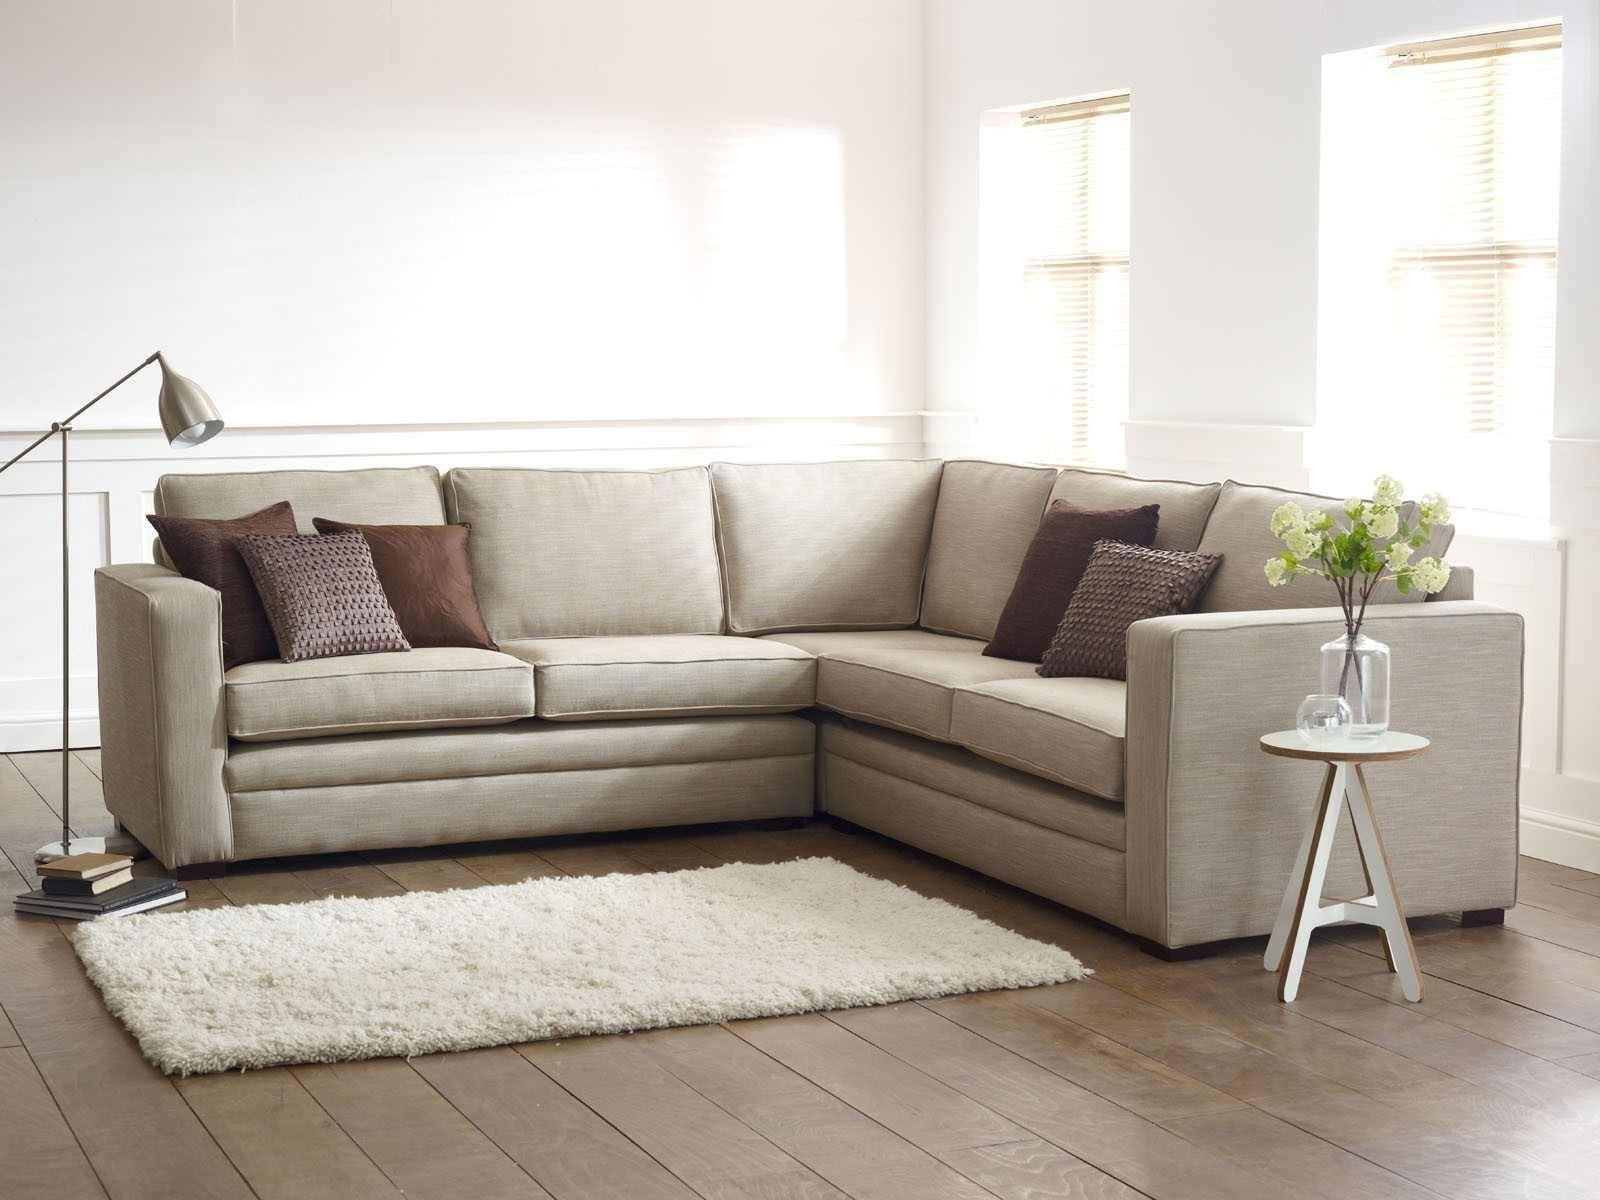 Wonderful Gray Sectional L Shaped Sofa Design Ideas For Living Room Intended For L Shaped Sofas (View 5 of 10)